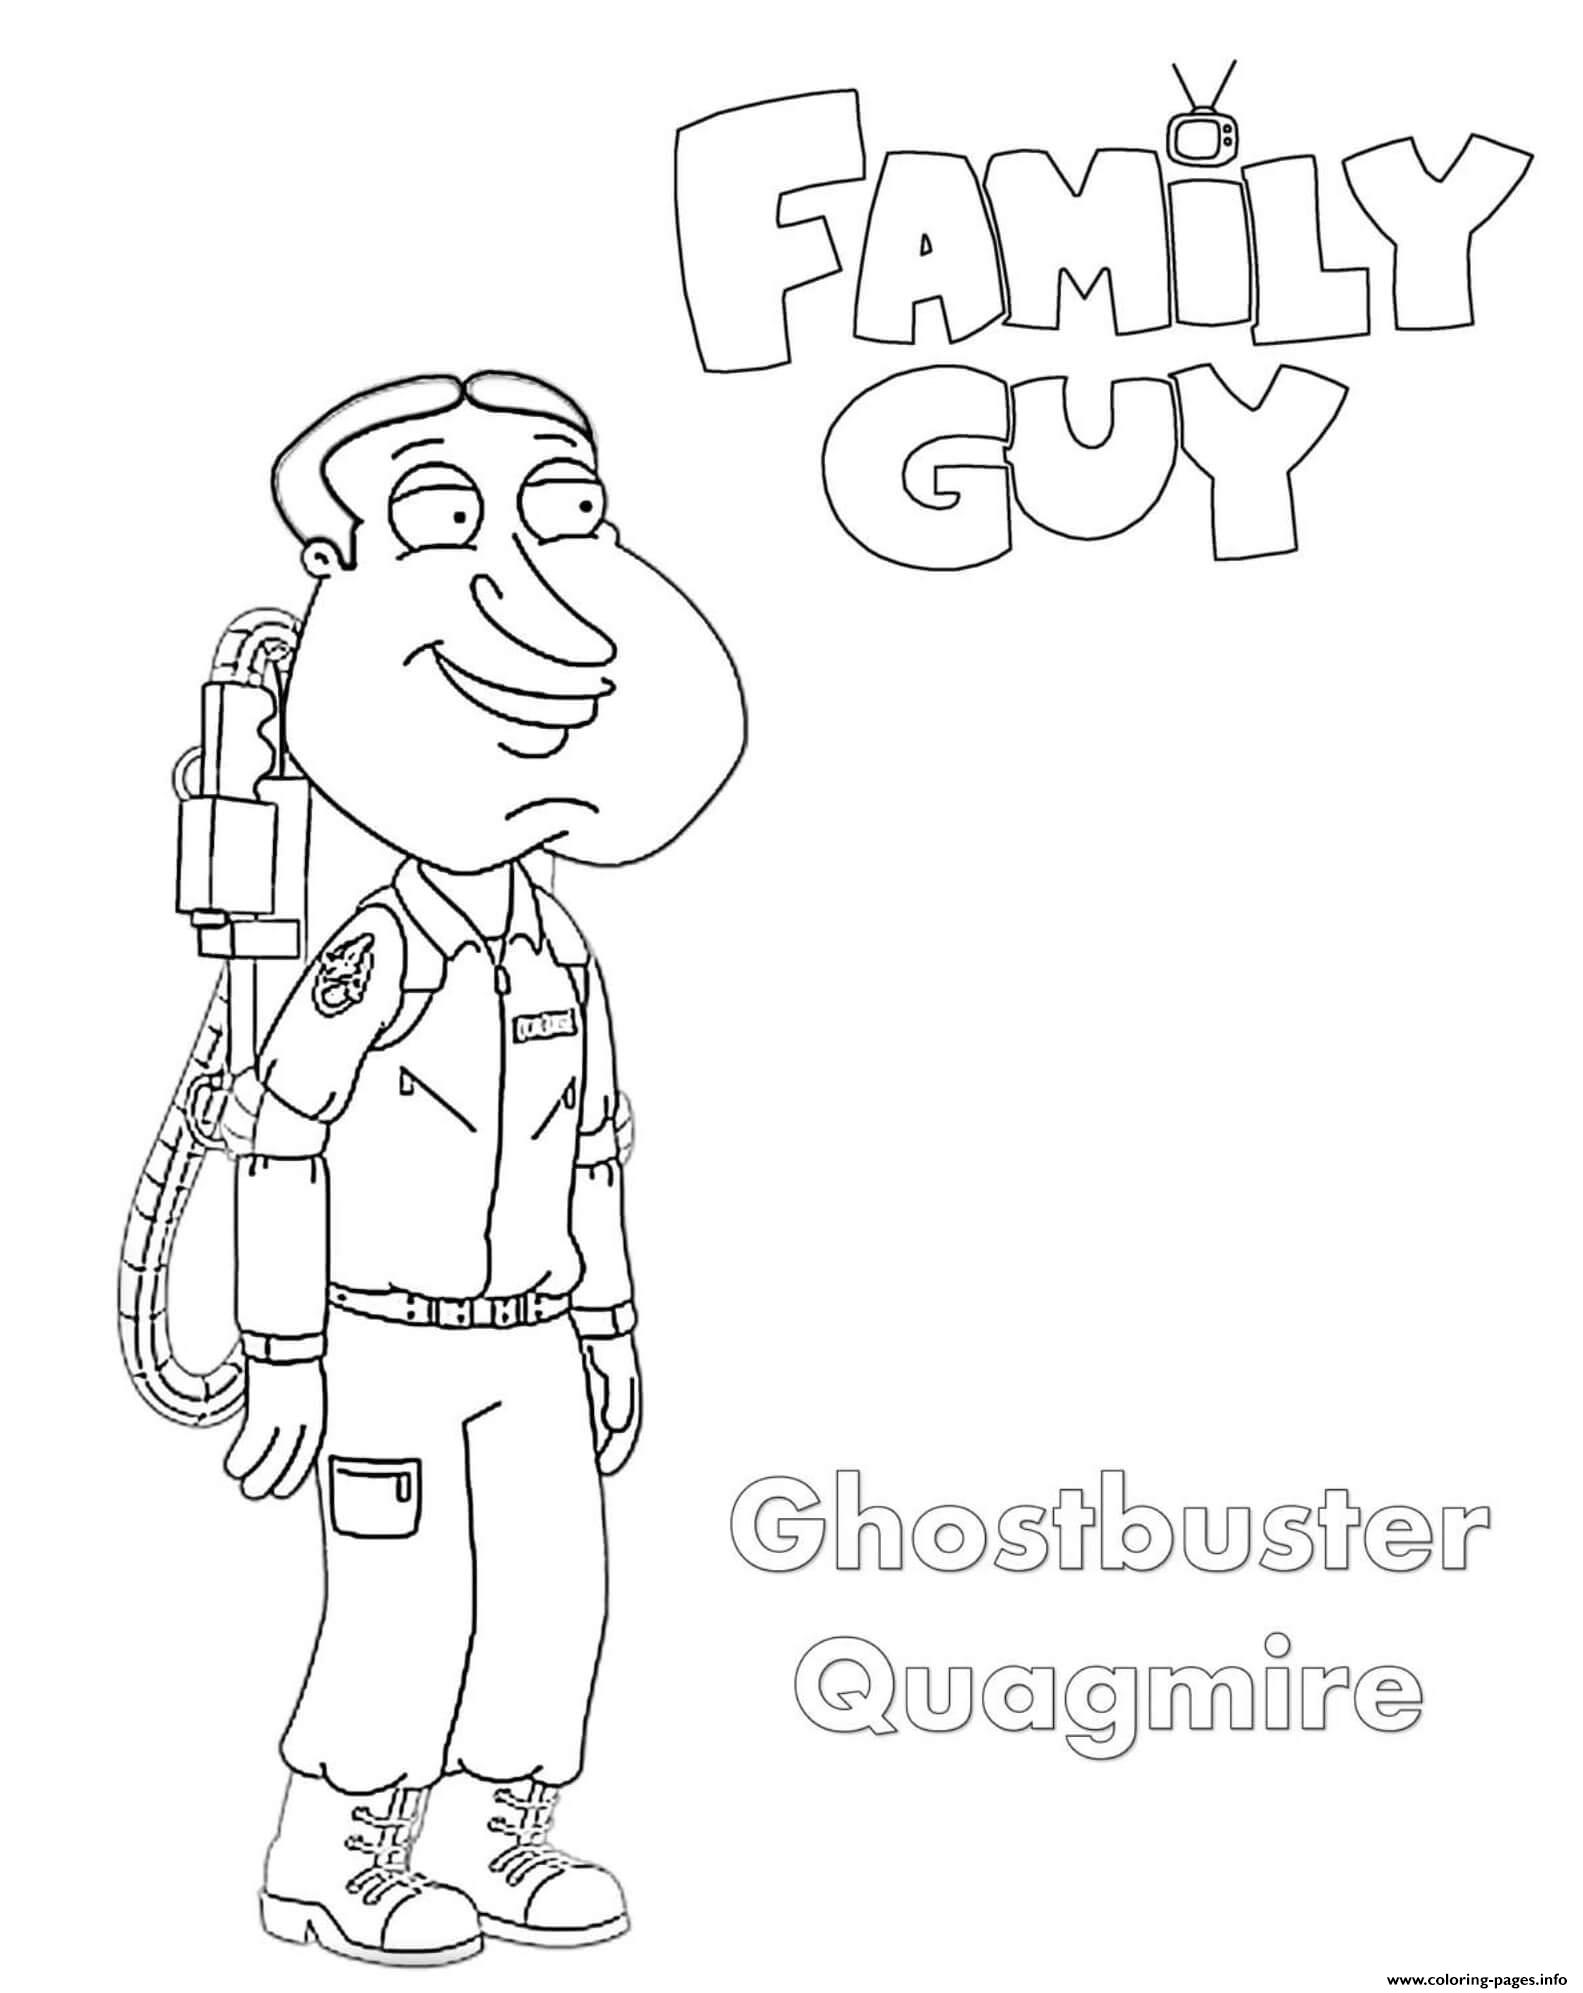 Family Guy Ghostbusters Quagmire coloring pages